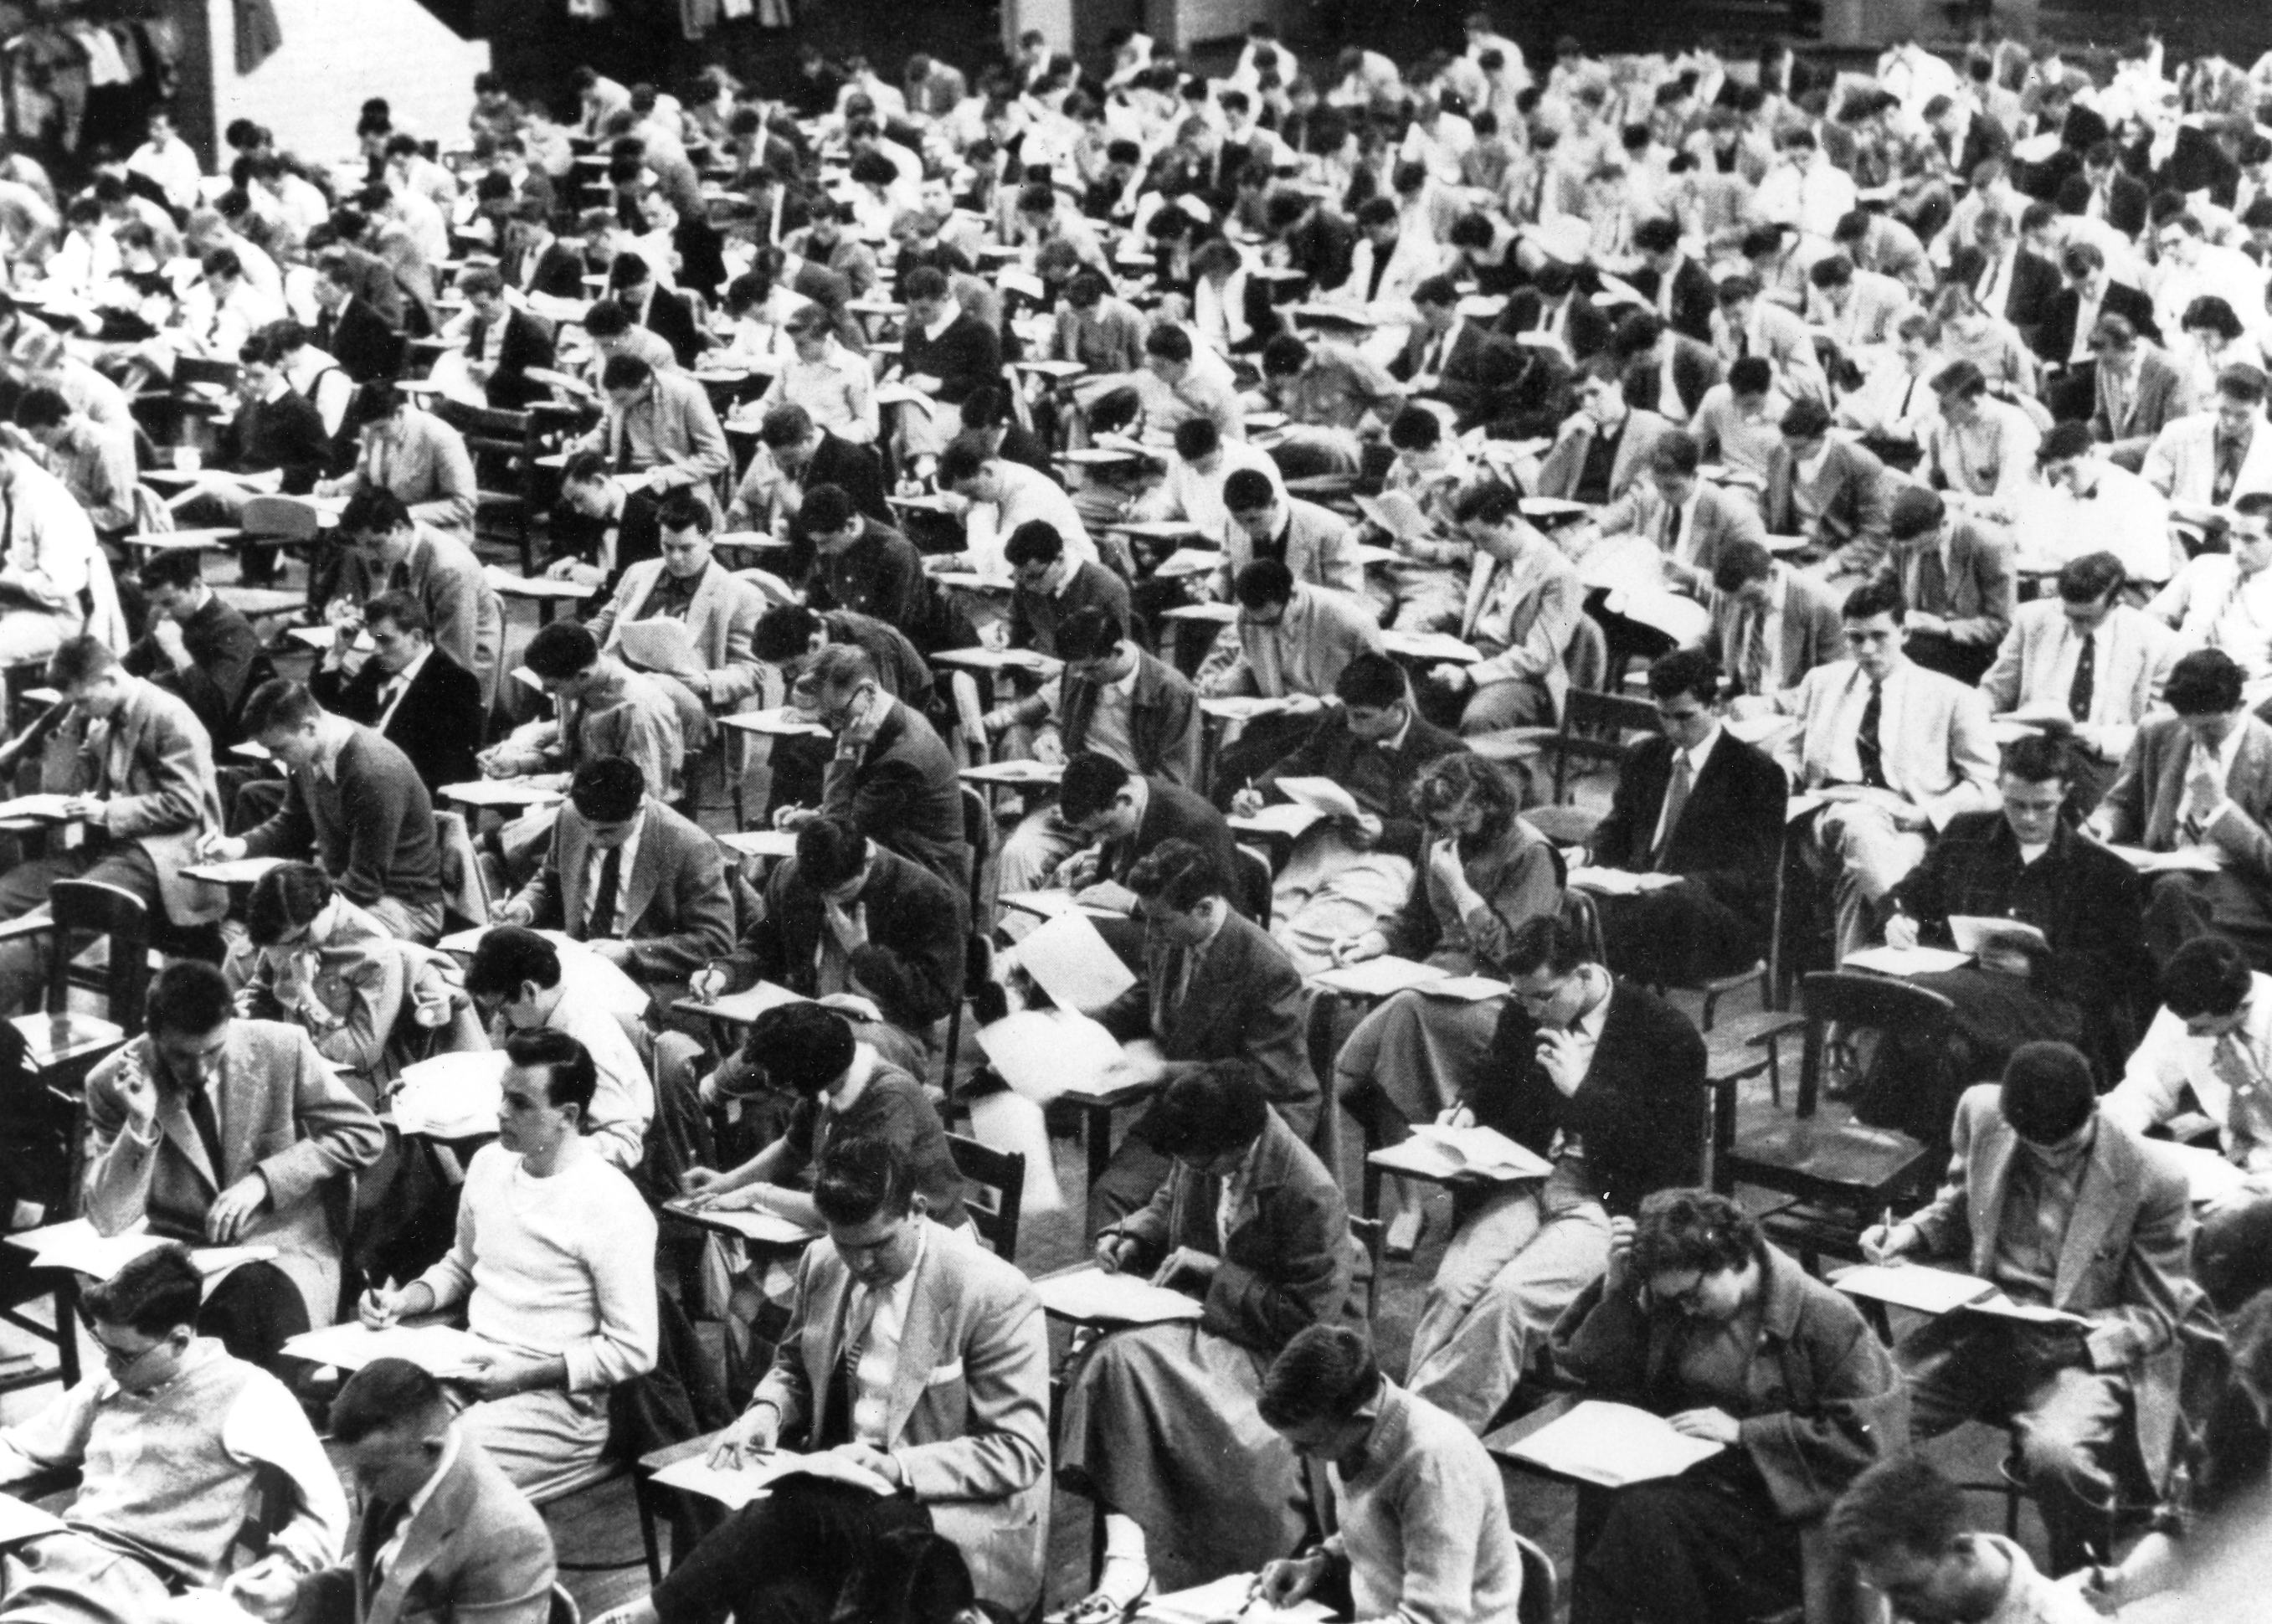 These students took their final exams